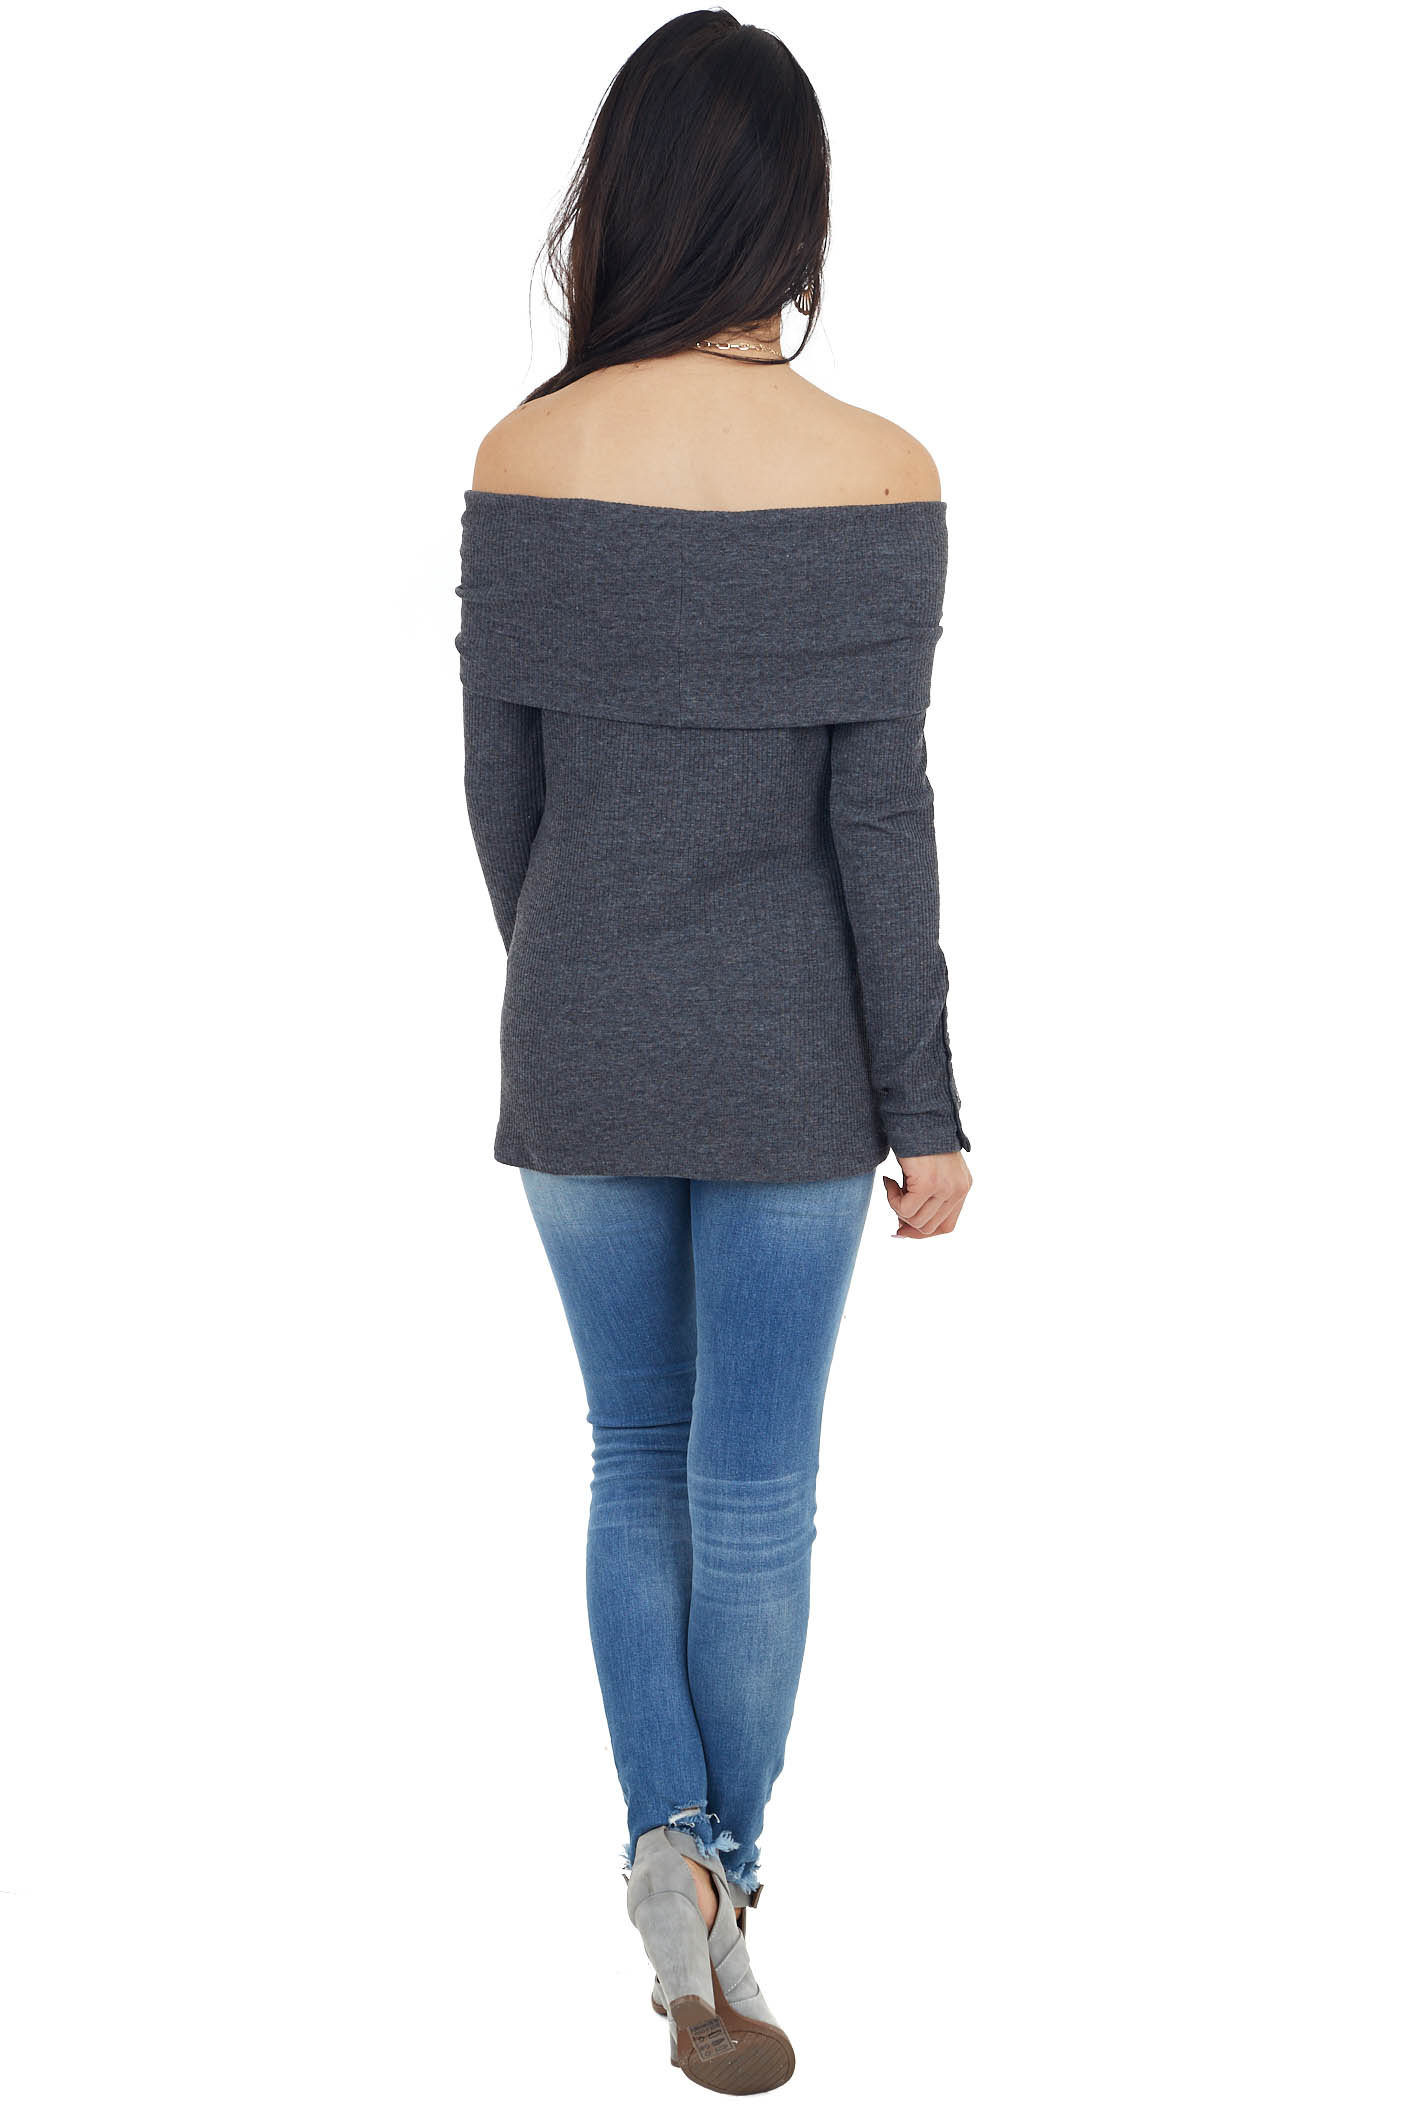 Charcoal Grey Ribbed Knit Folded Off the Shoulder Top